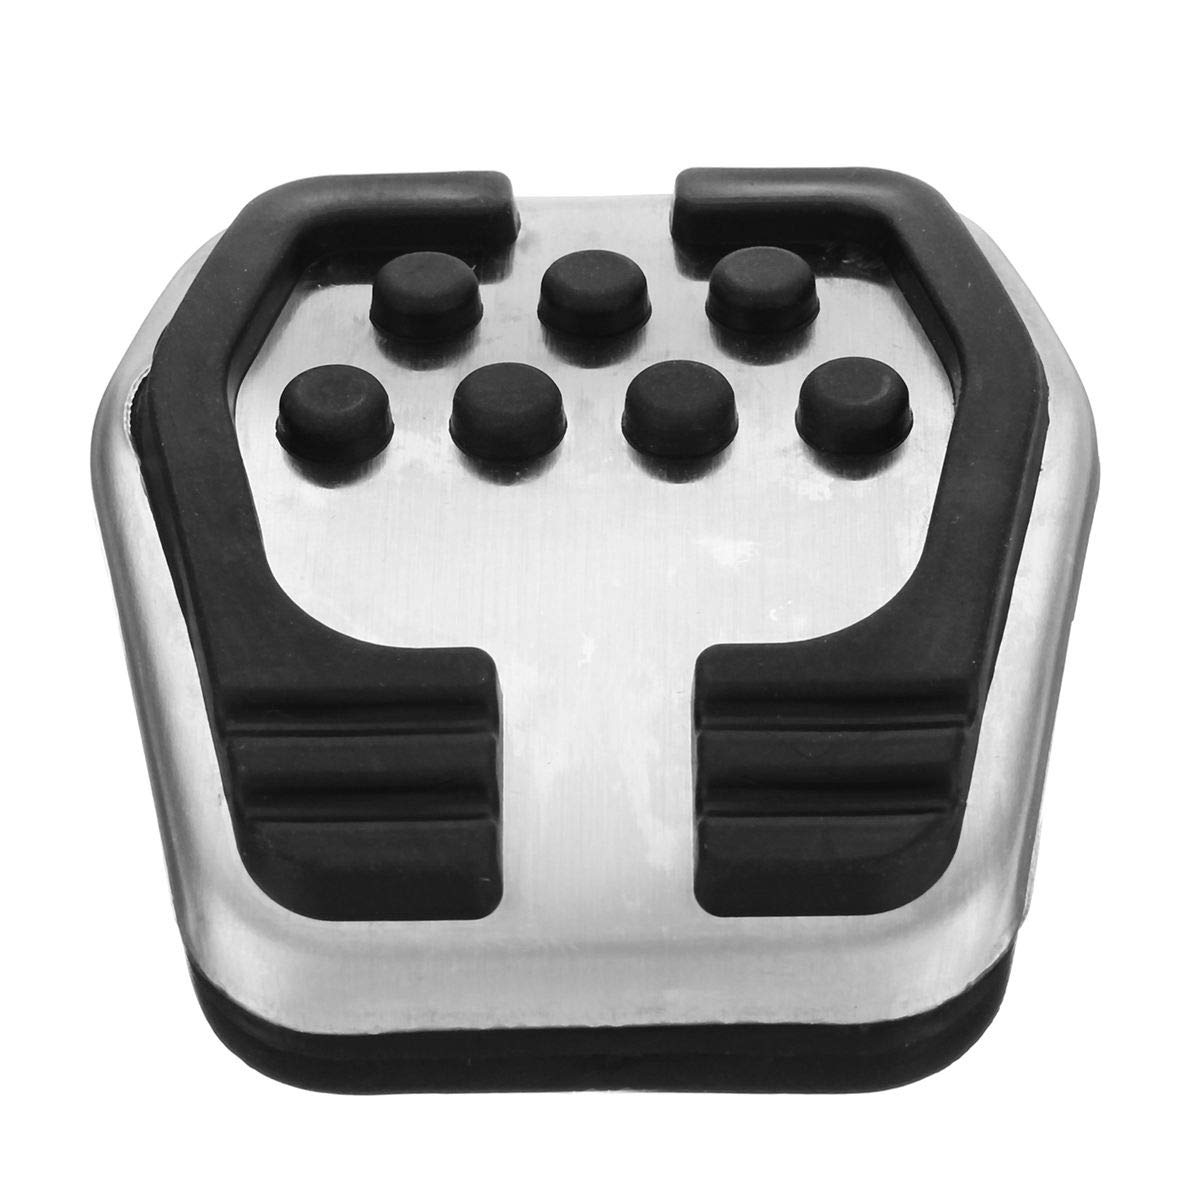 Stainless Car Clutch Brake MT Pedals Covers Pad Non Slip No Drilling for Ford//Focus 2 MK2Focus 3 MKFocus 4 MK4 RS ST 2005-2018